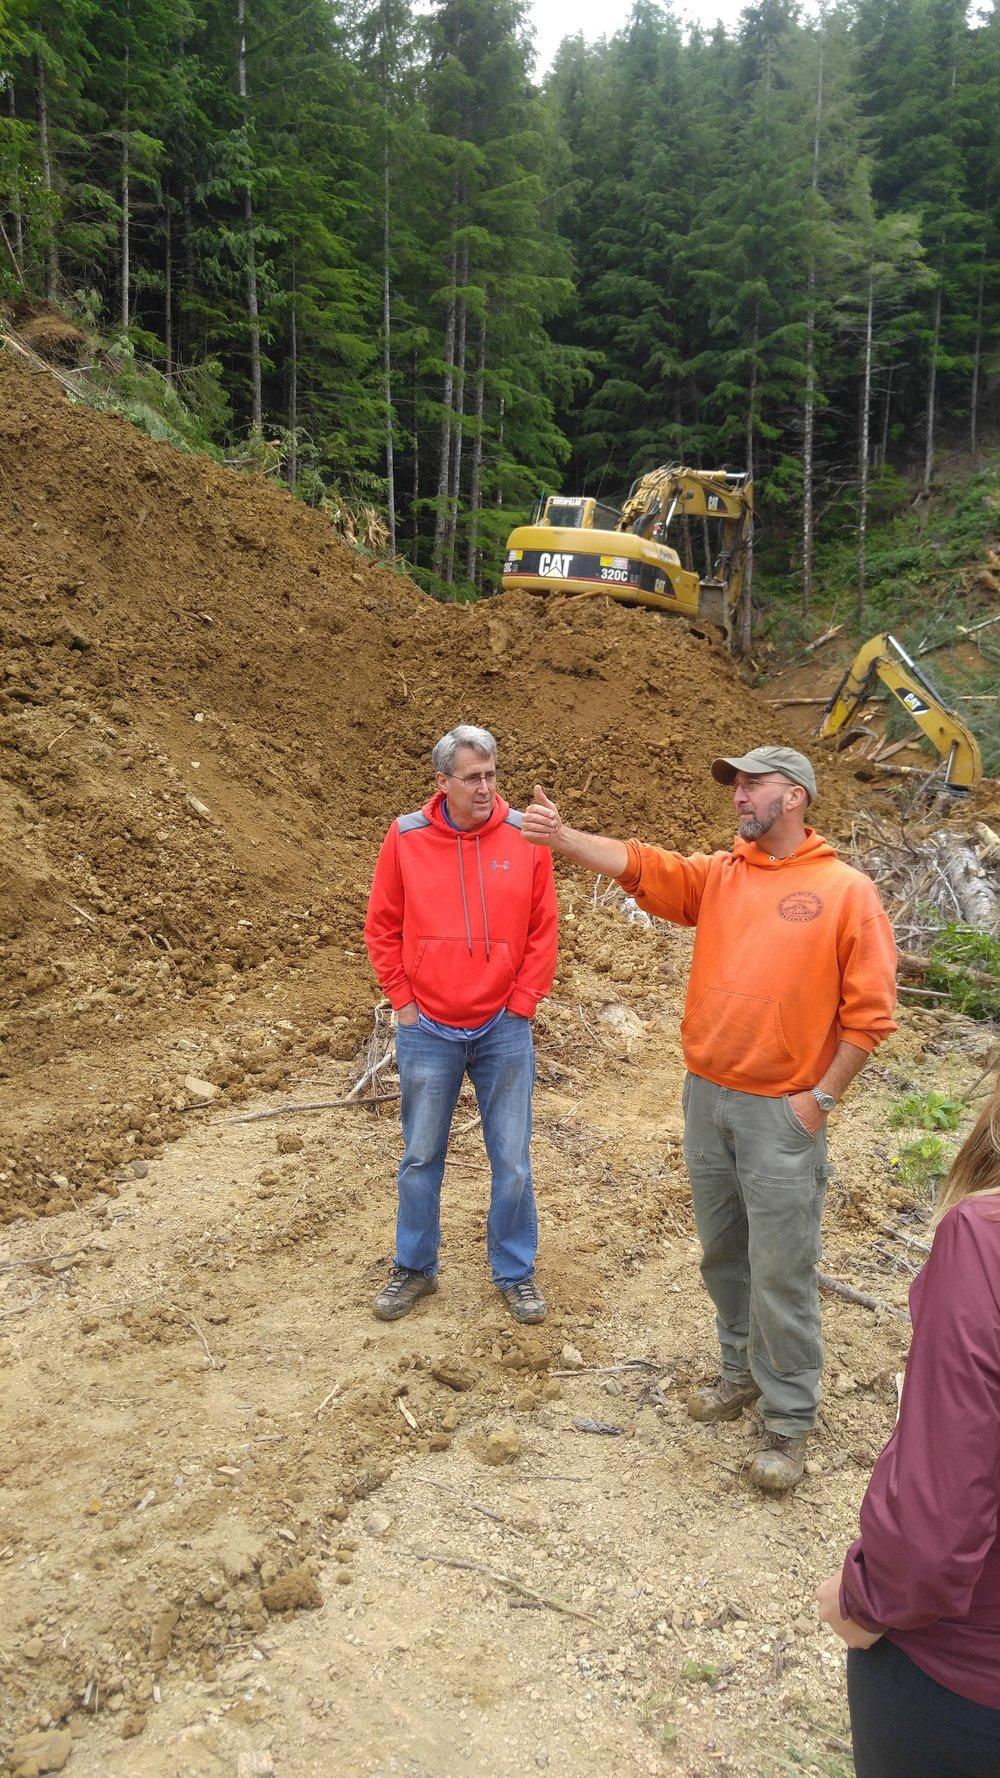 TNC's Field Forester Dave Ryan talks with Dale Lewis from Congresswoman Herrera Beutler's office about a road decommissioning project in the Ellsworth Creek Preserve. Photo © Jessica Helsley